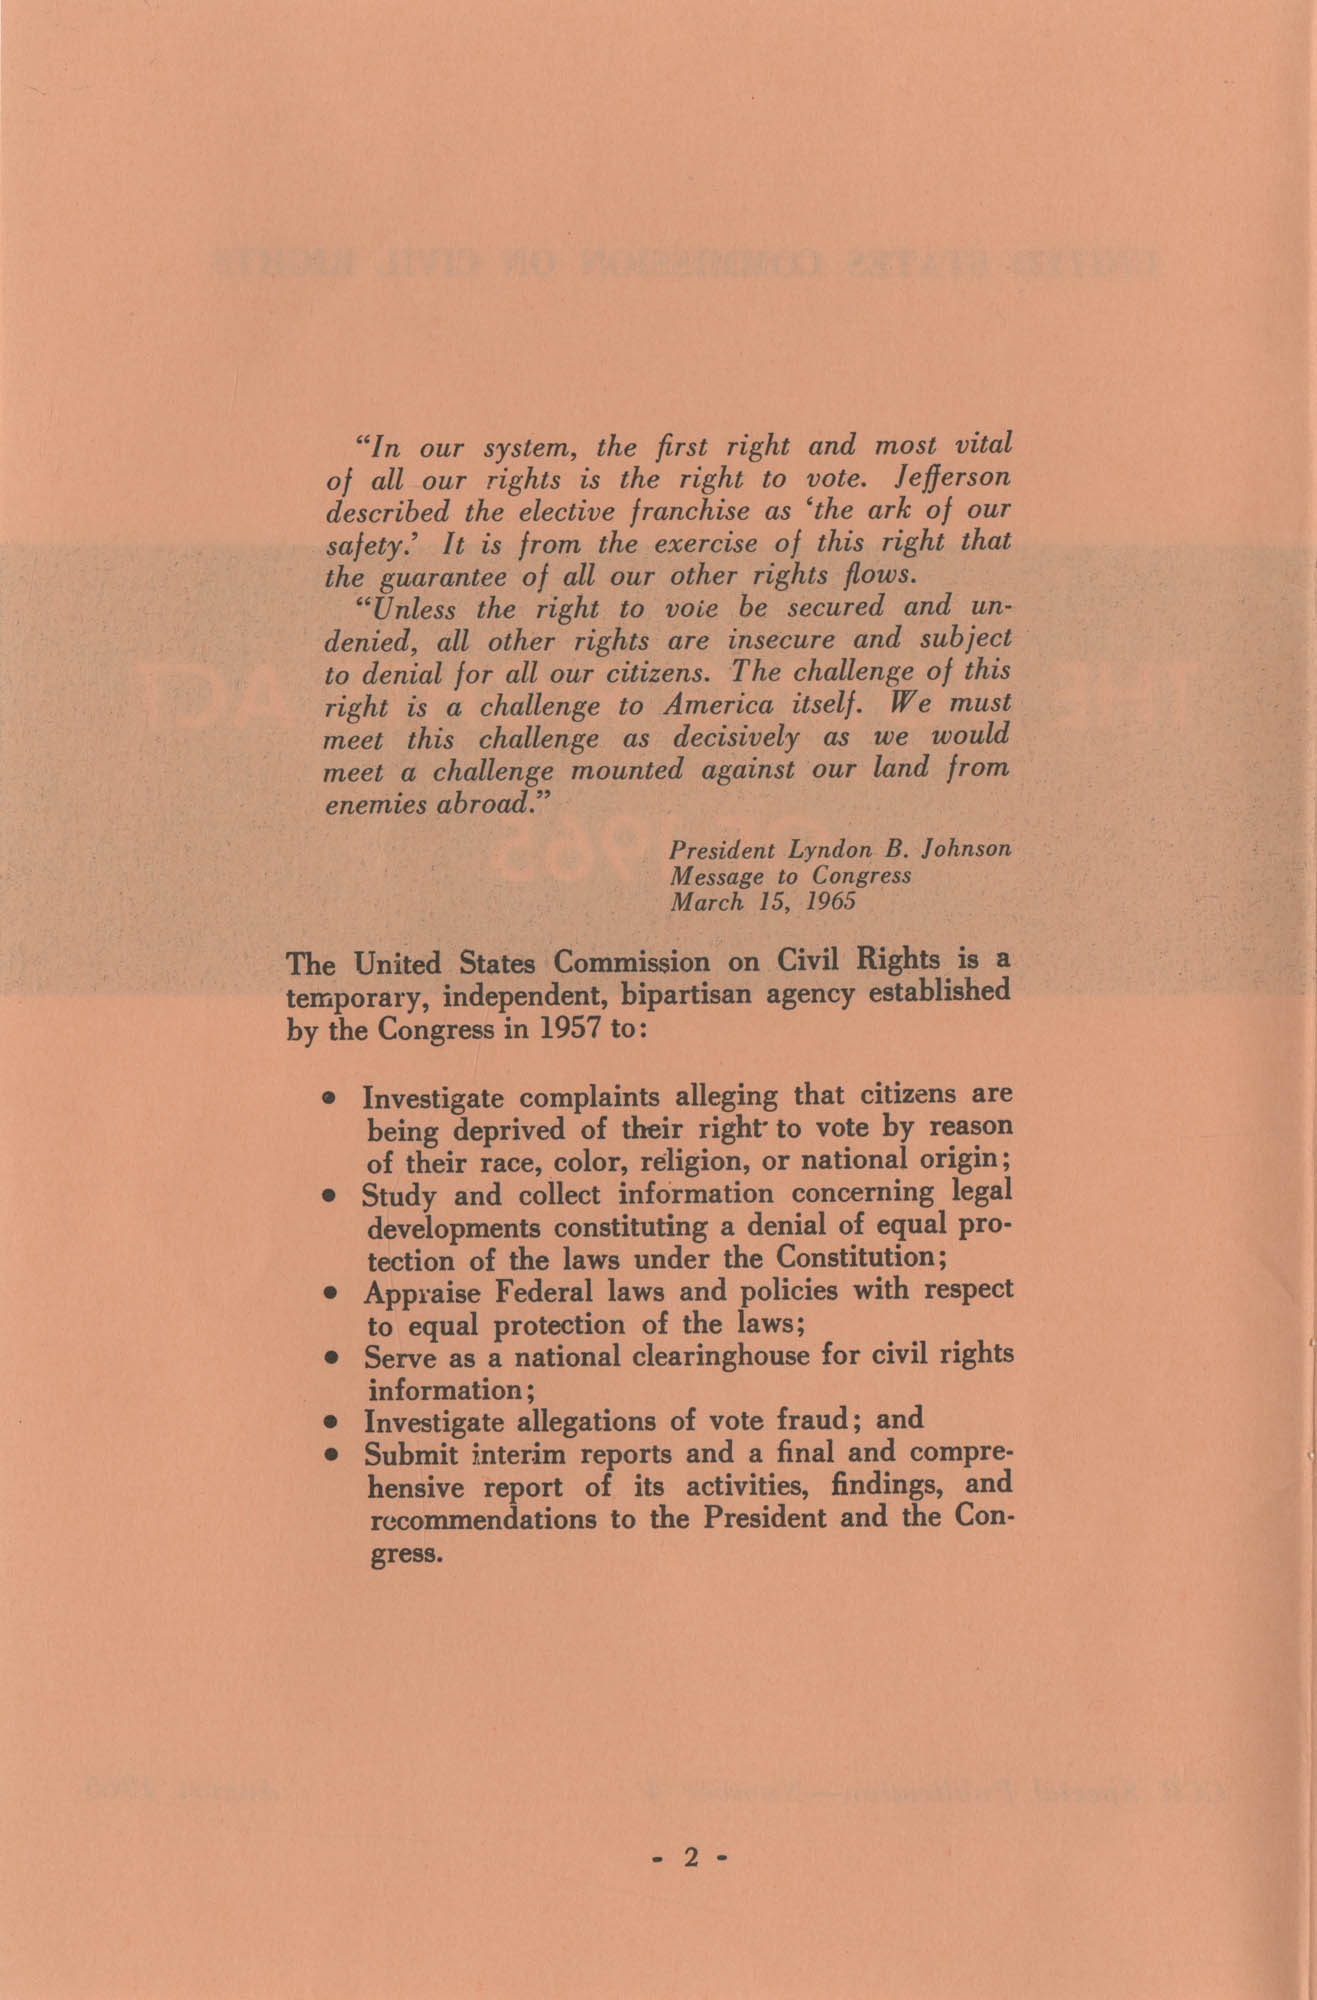 The Voting Rights Act of 1965, Page 2